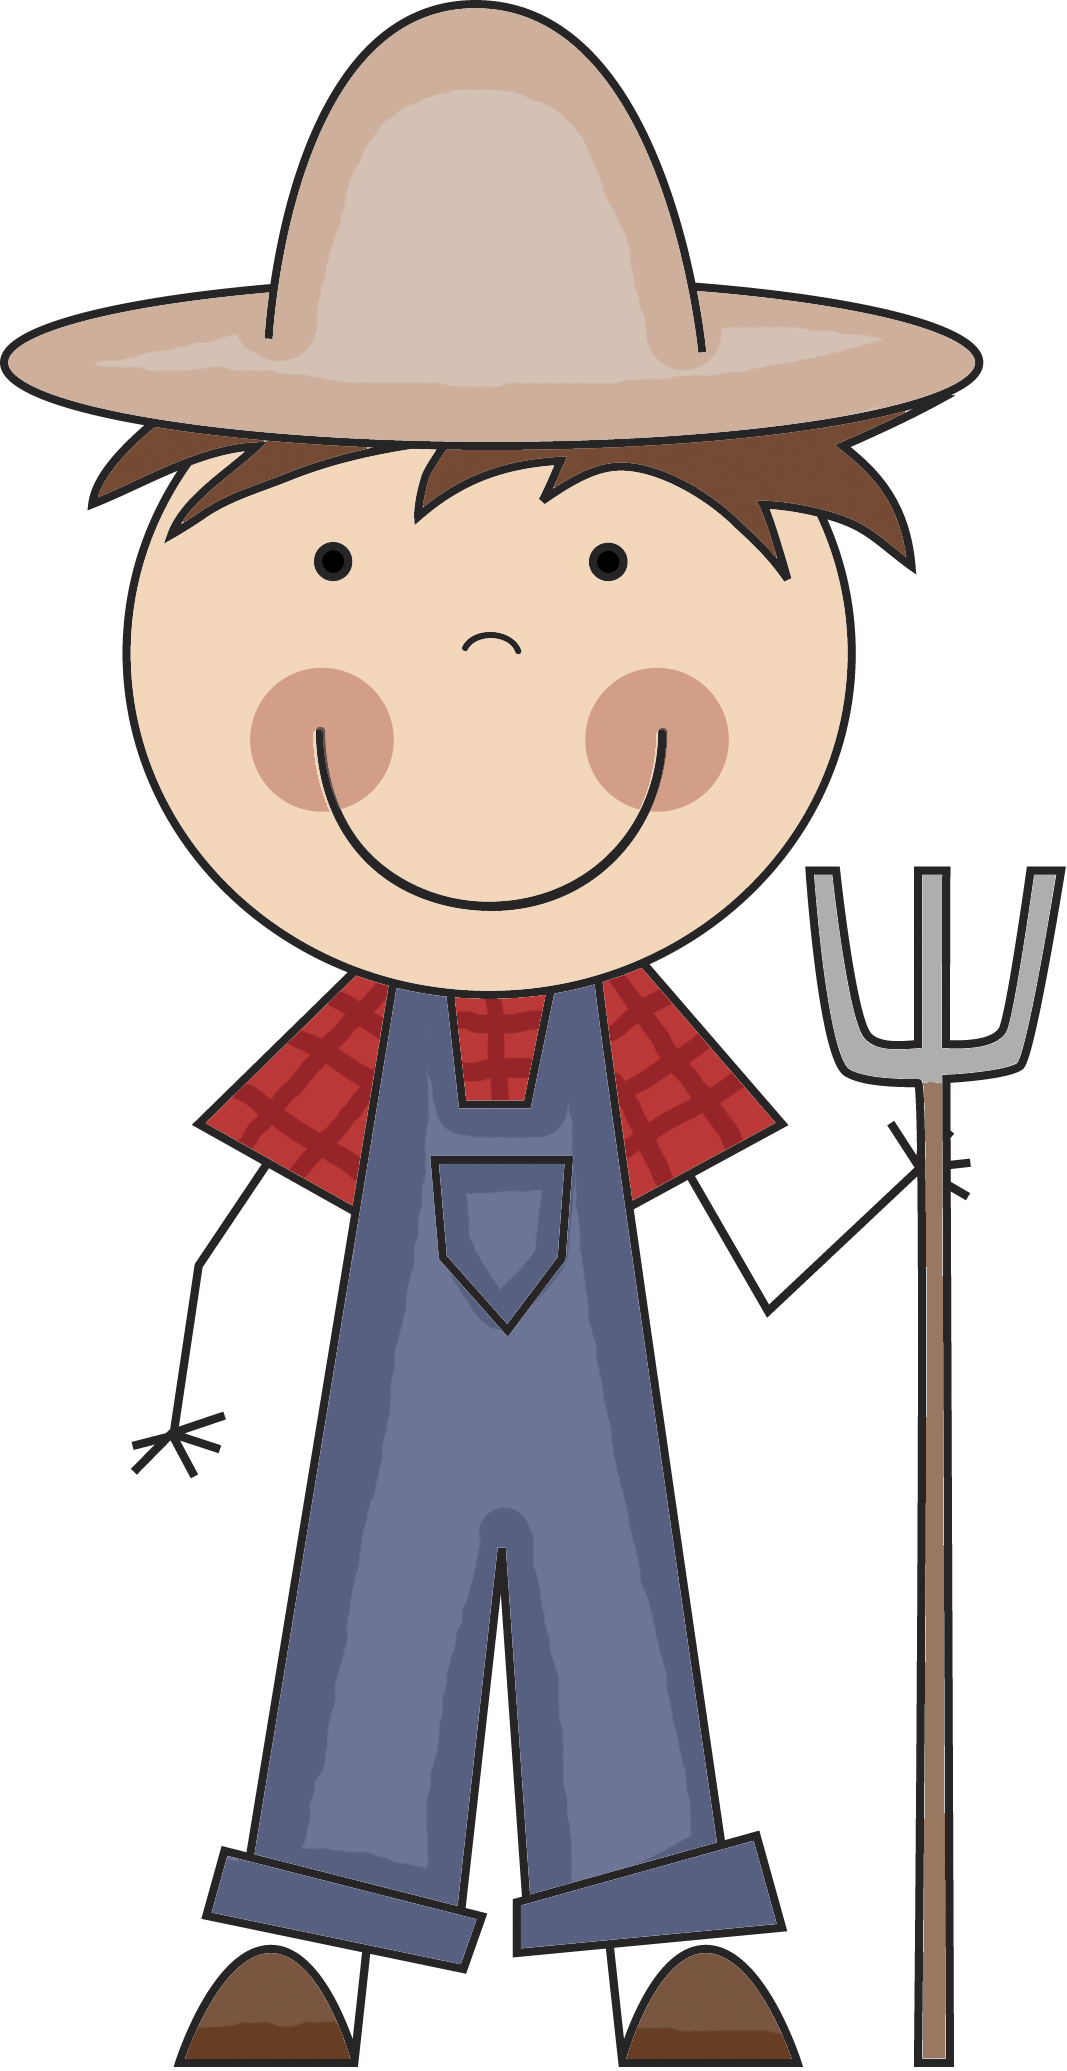 Farmer clipart producer. Png images free download